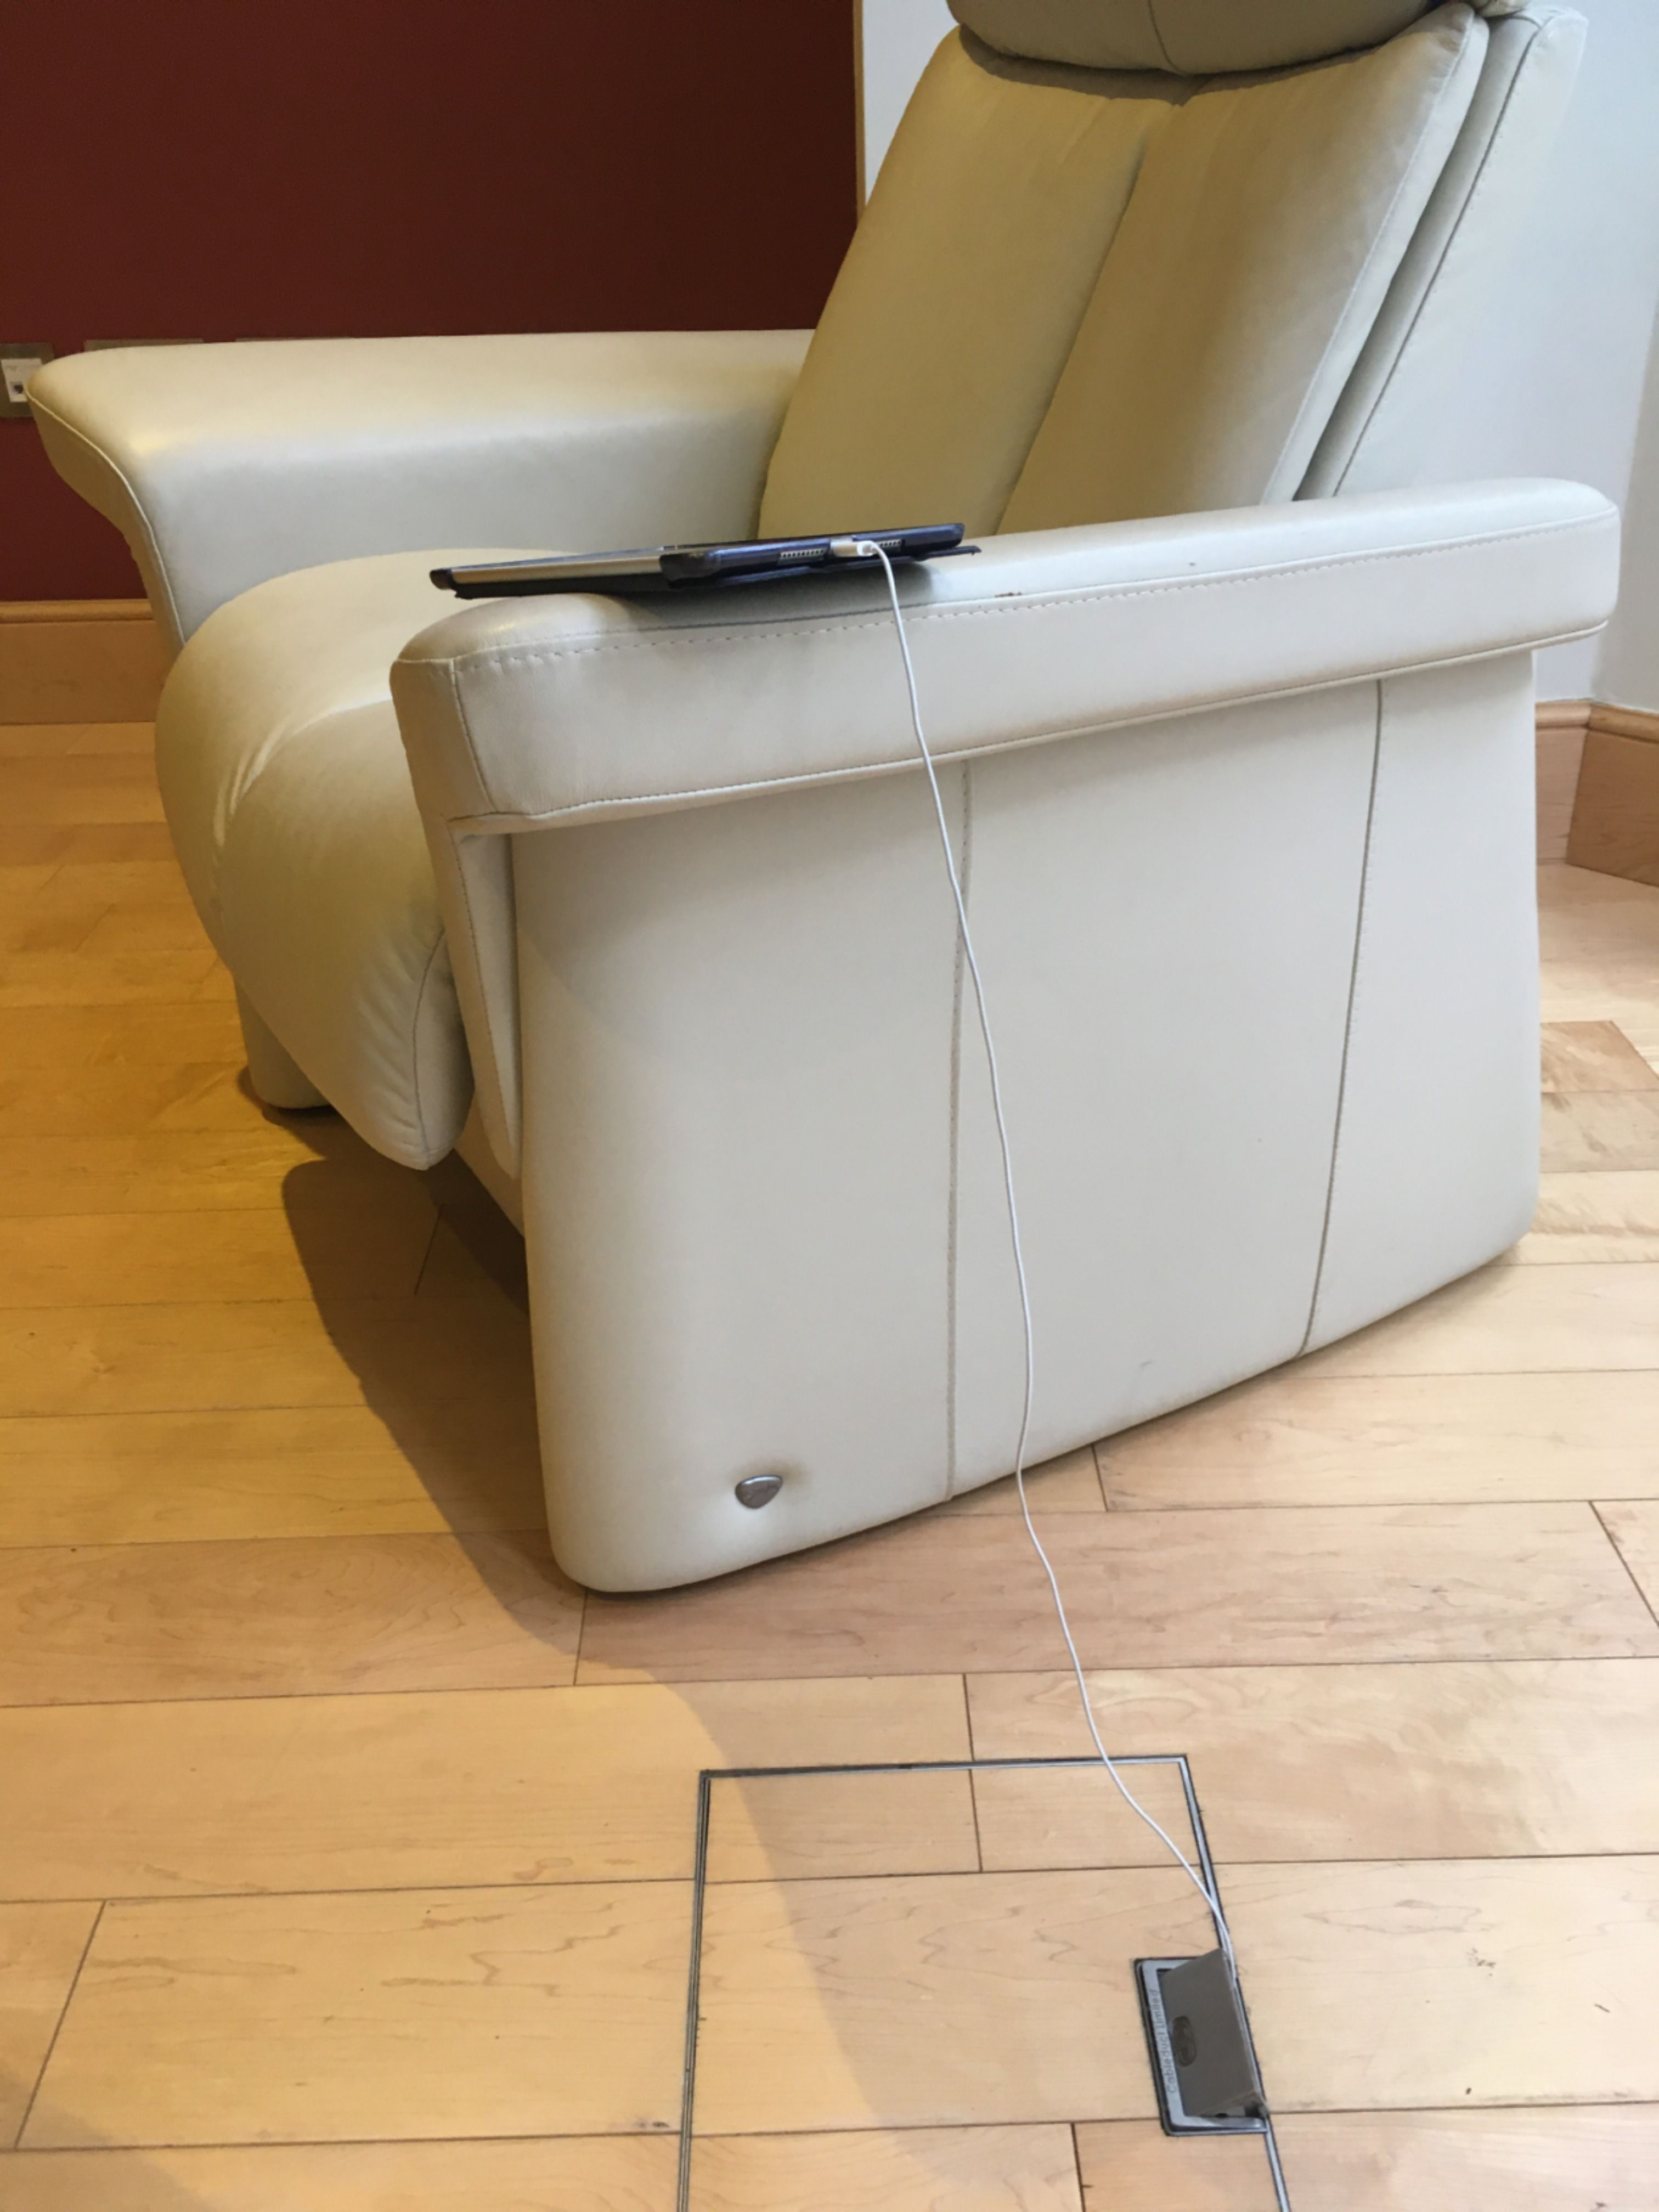 Relax with the quiet confidence that you don't have to go charge your phone. #interiordesign #architect #floorbox #home #homedesign #homedesignideas #renovation #electronic #designideas #luxuryhome #discreet #interiorarchitecture #practical #flooring